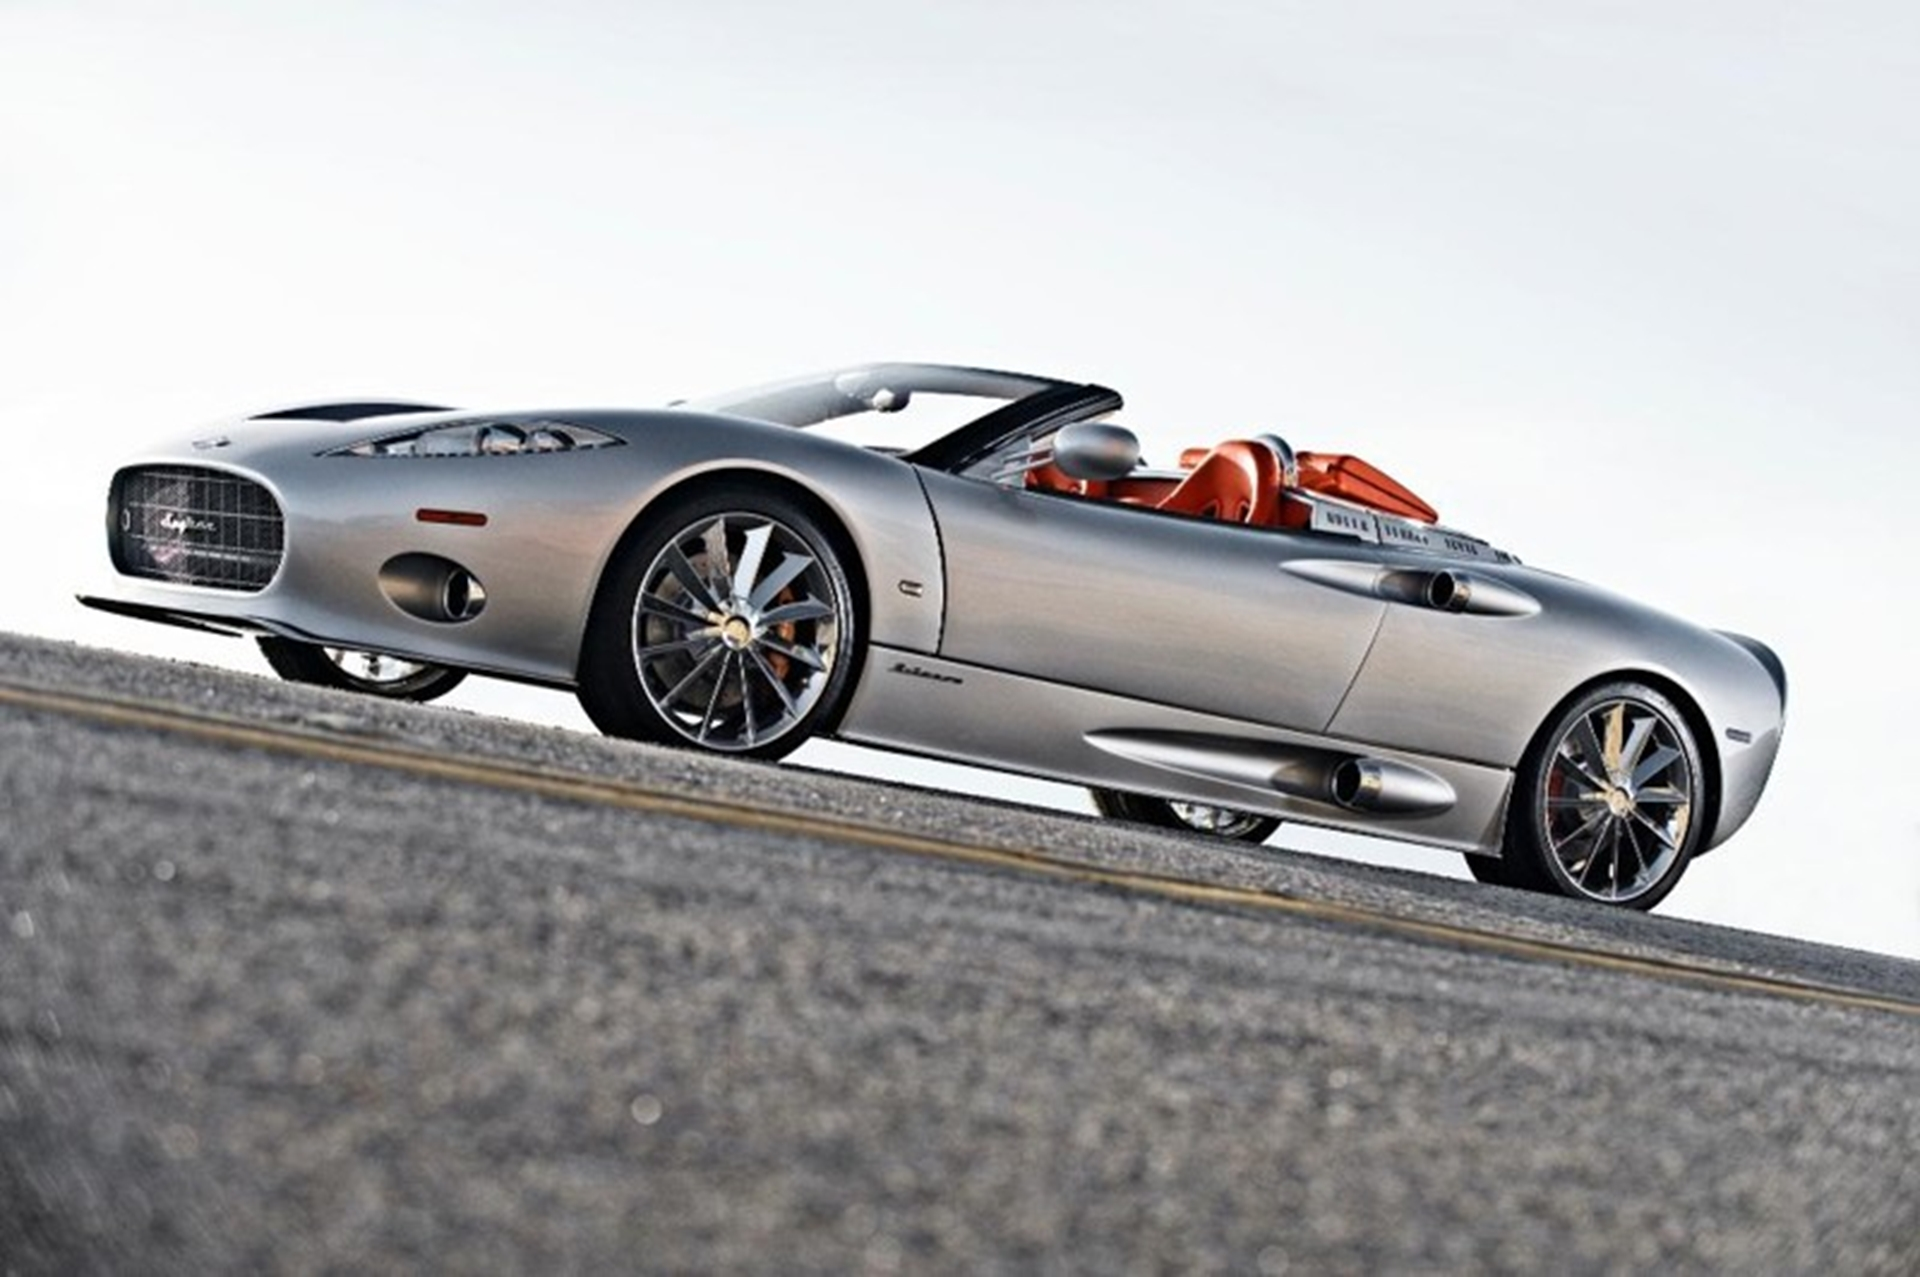 Spyker Spyder Auction